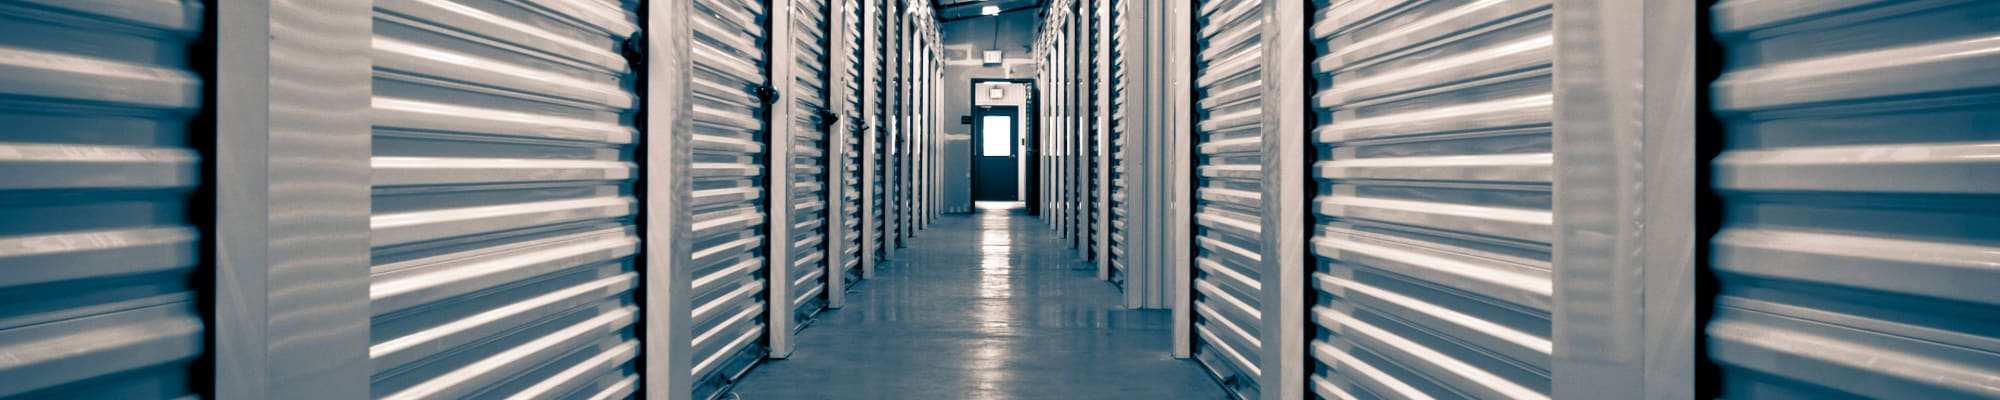 Reviews for Store It All Self Storage - Lakeway in Lakeway, Texas